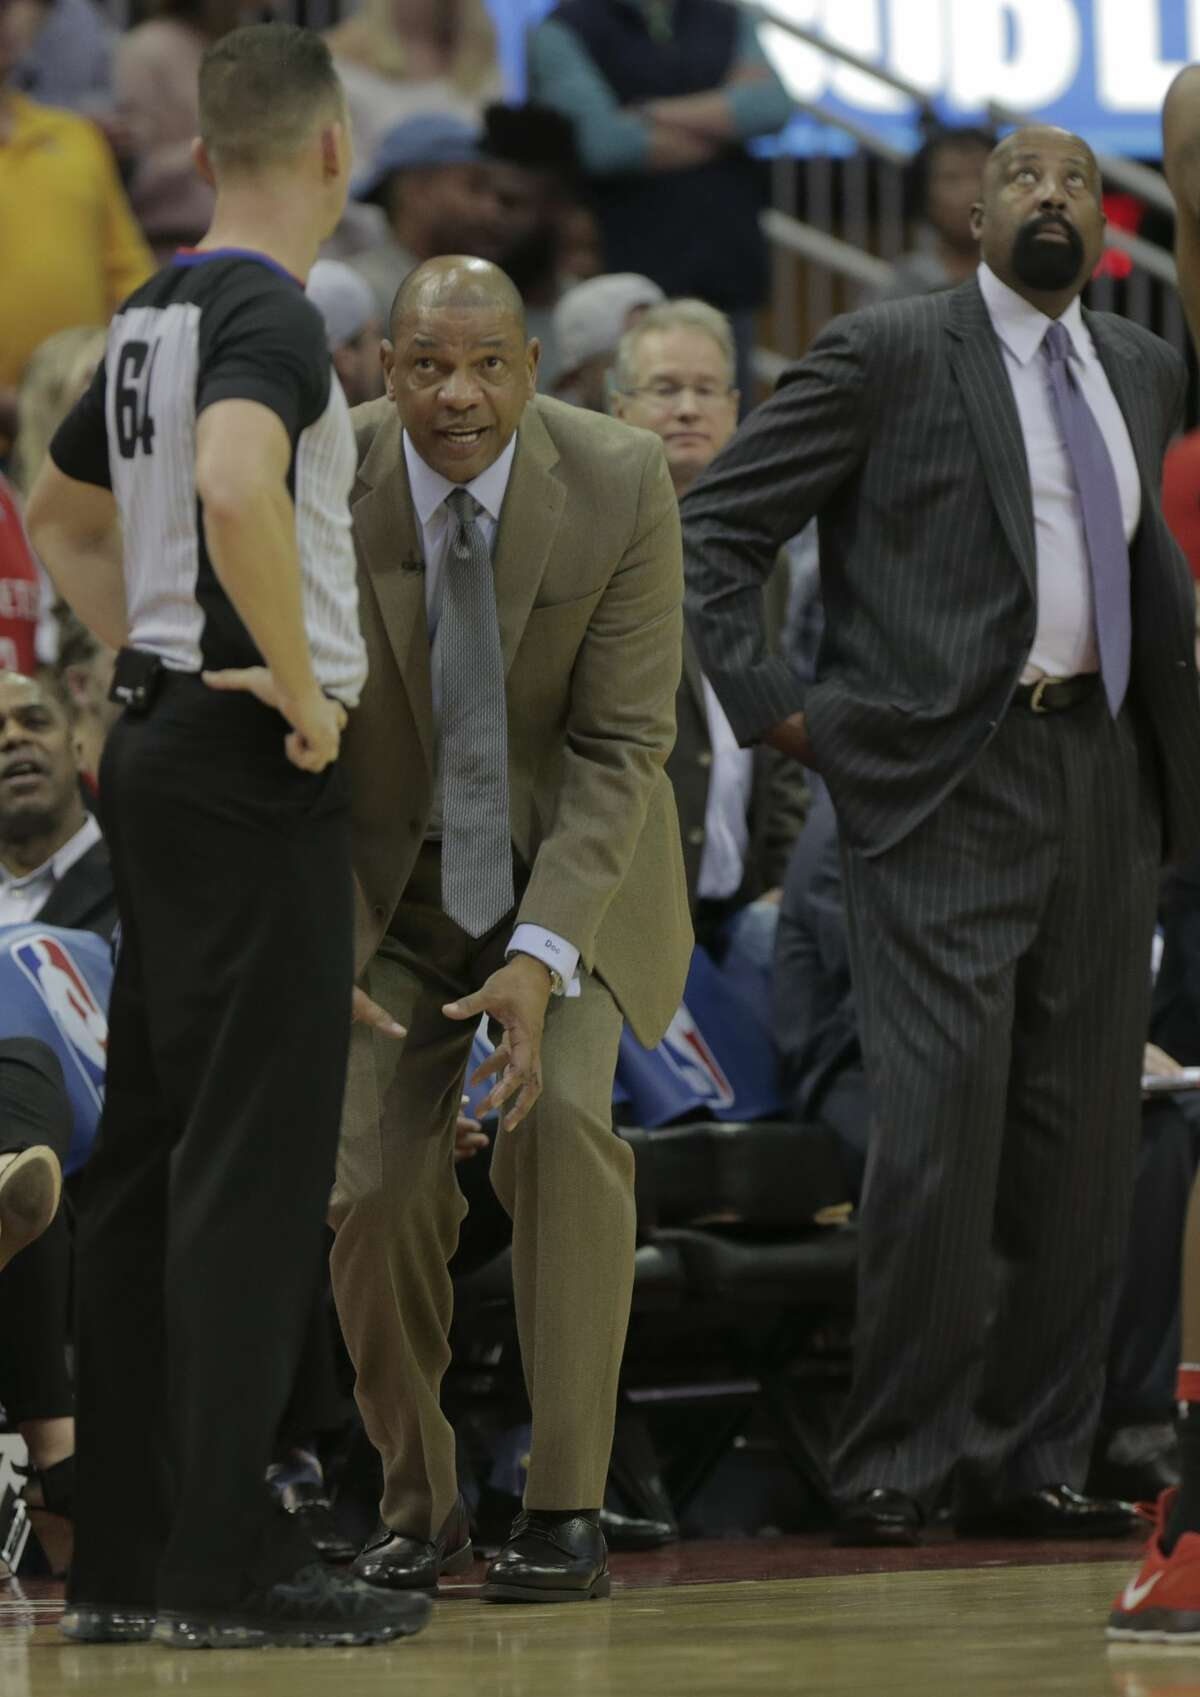 LA Clippers head coach Doc Rivers tries to explain how his player didn't foul during the second half of game action against the Houston Rockets at the Toyota Center on Friday, Dec. 22, 2017, in Houston. Clippers won the game 128-118. ( Elizabeth Conley / Houston Chronicle )